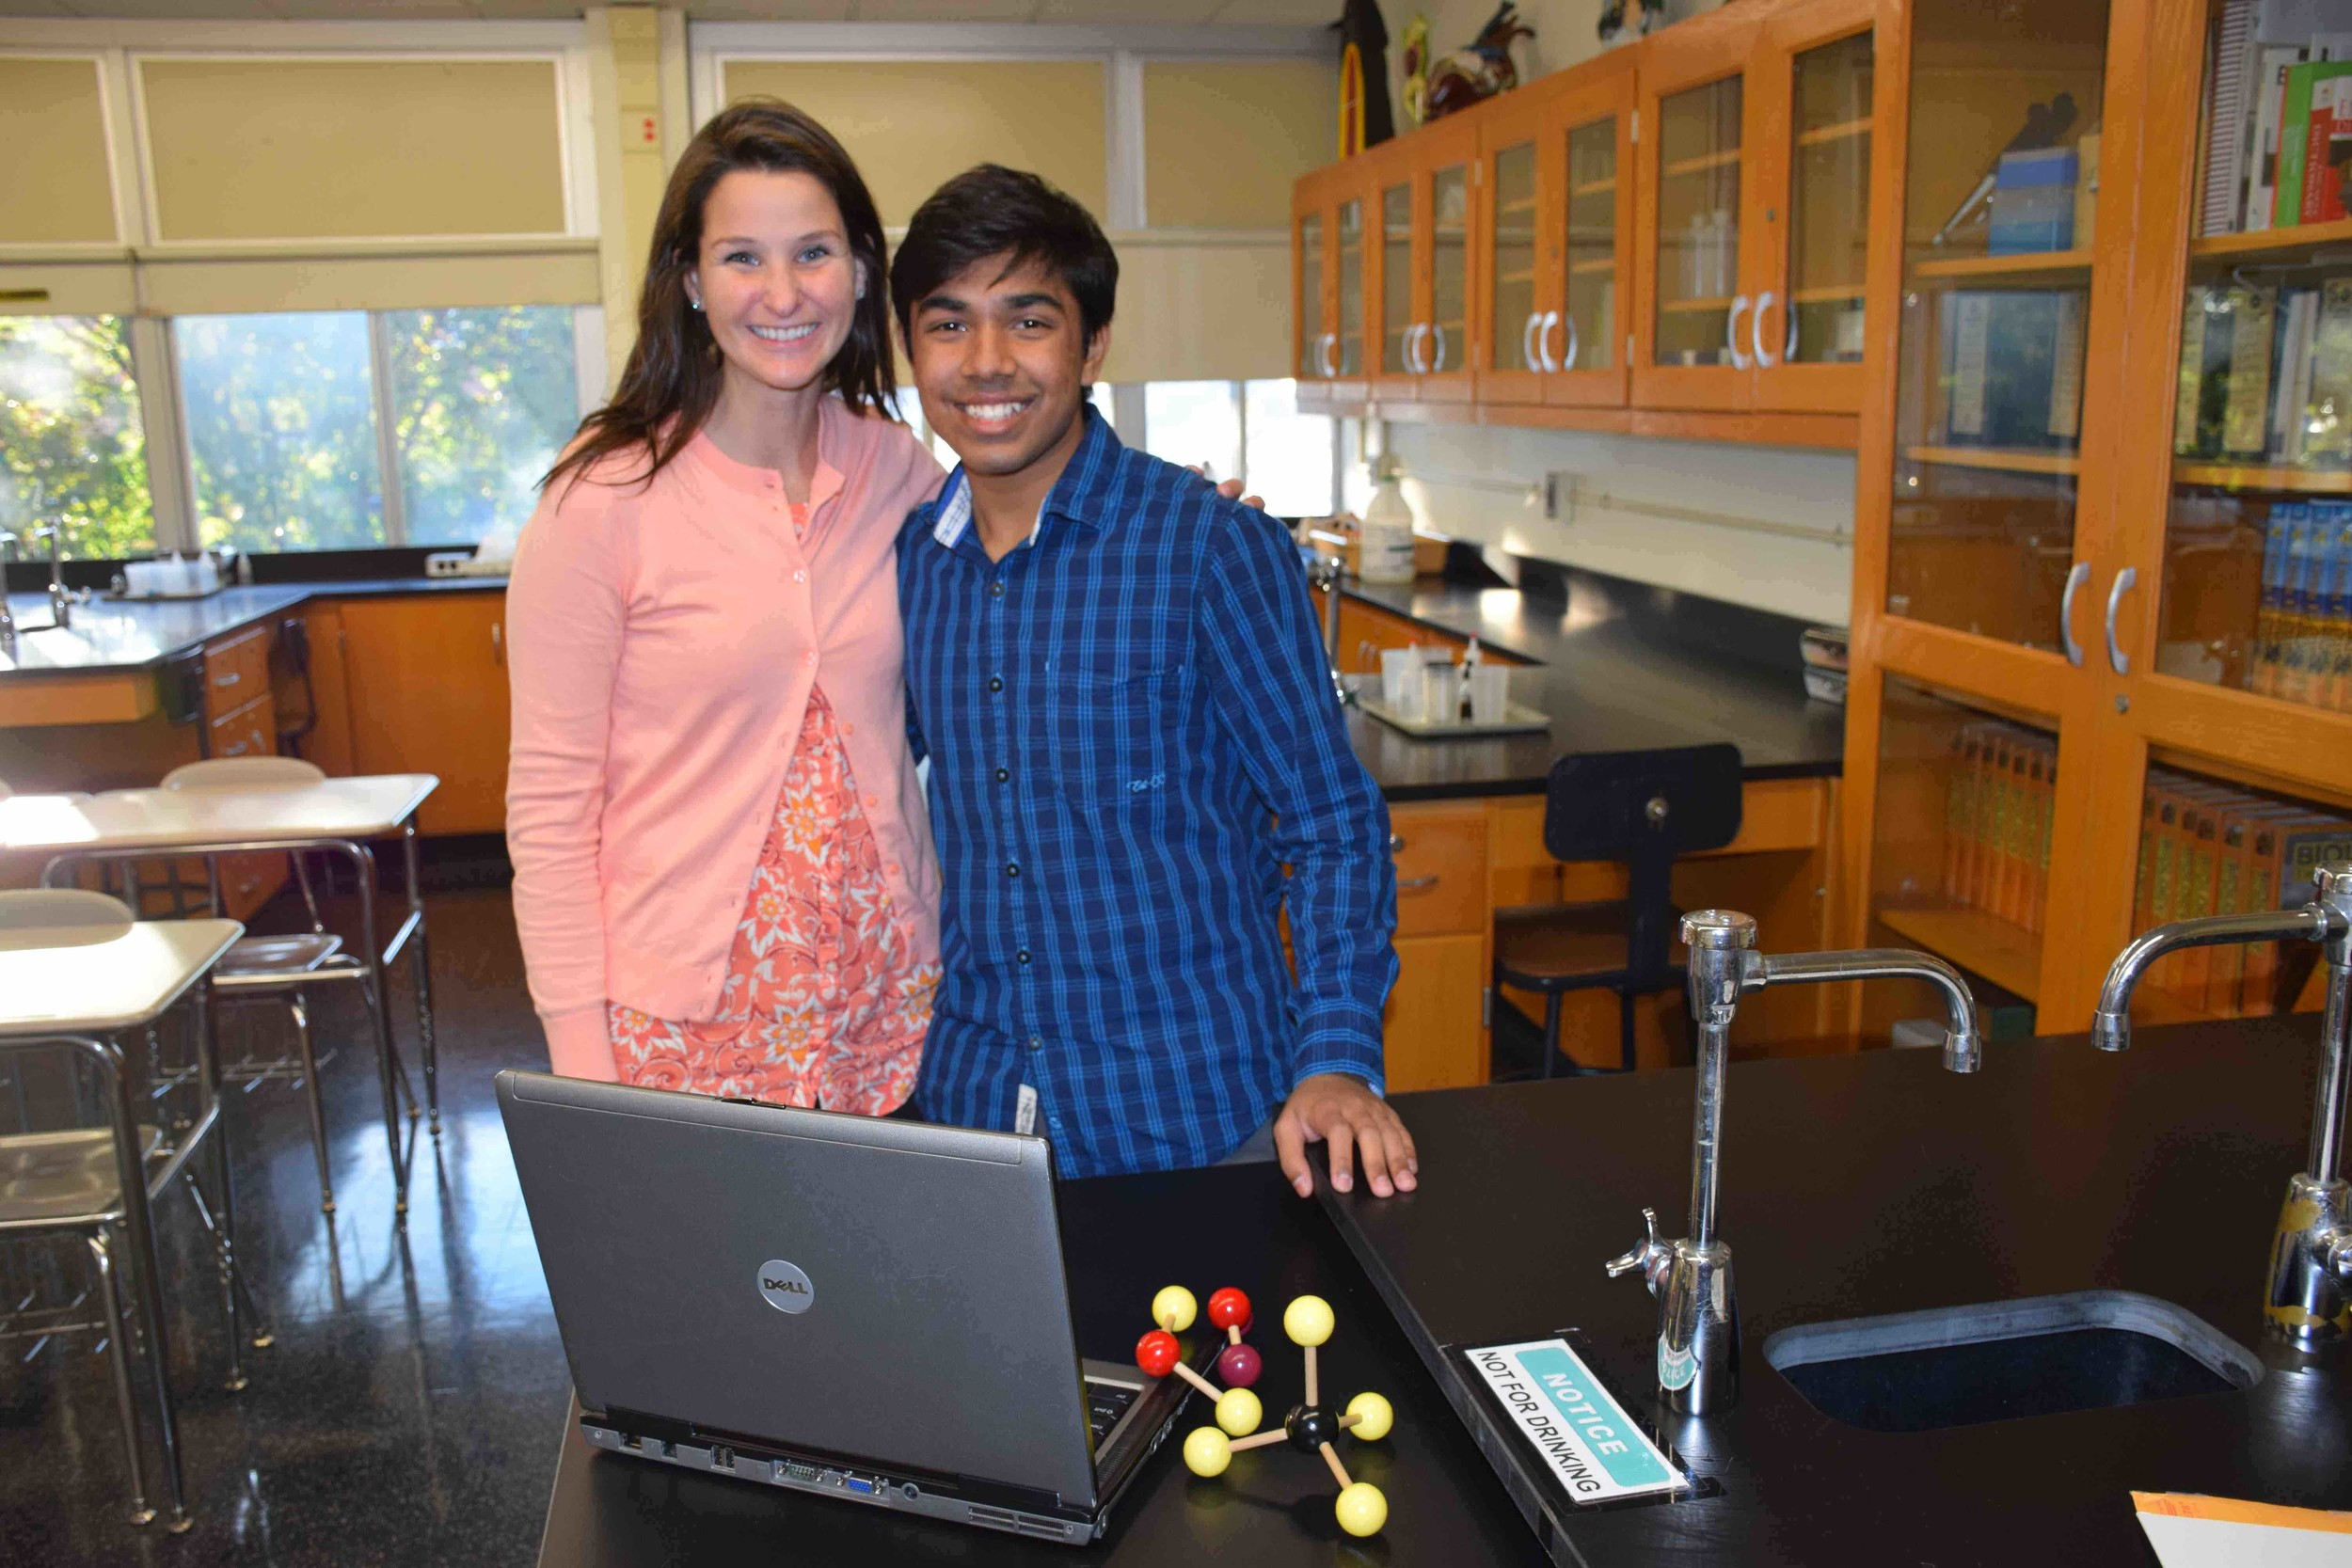 W.T. Clarke High School science research teacher Erika Rotolo congratulated senior Alby Joseph on receiving scholar status in the 2017 Regeneron Science Talent Search competition.